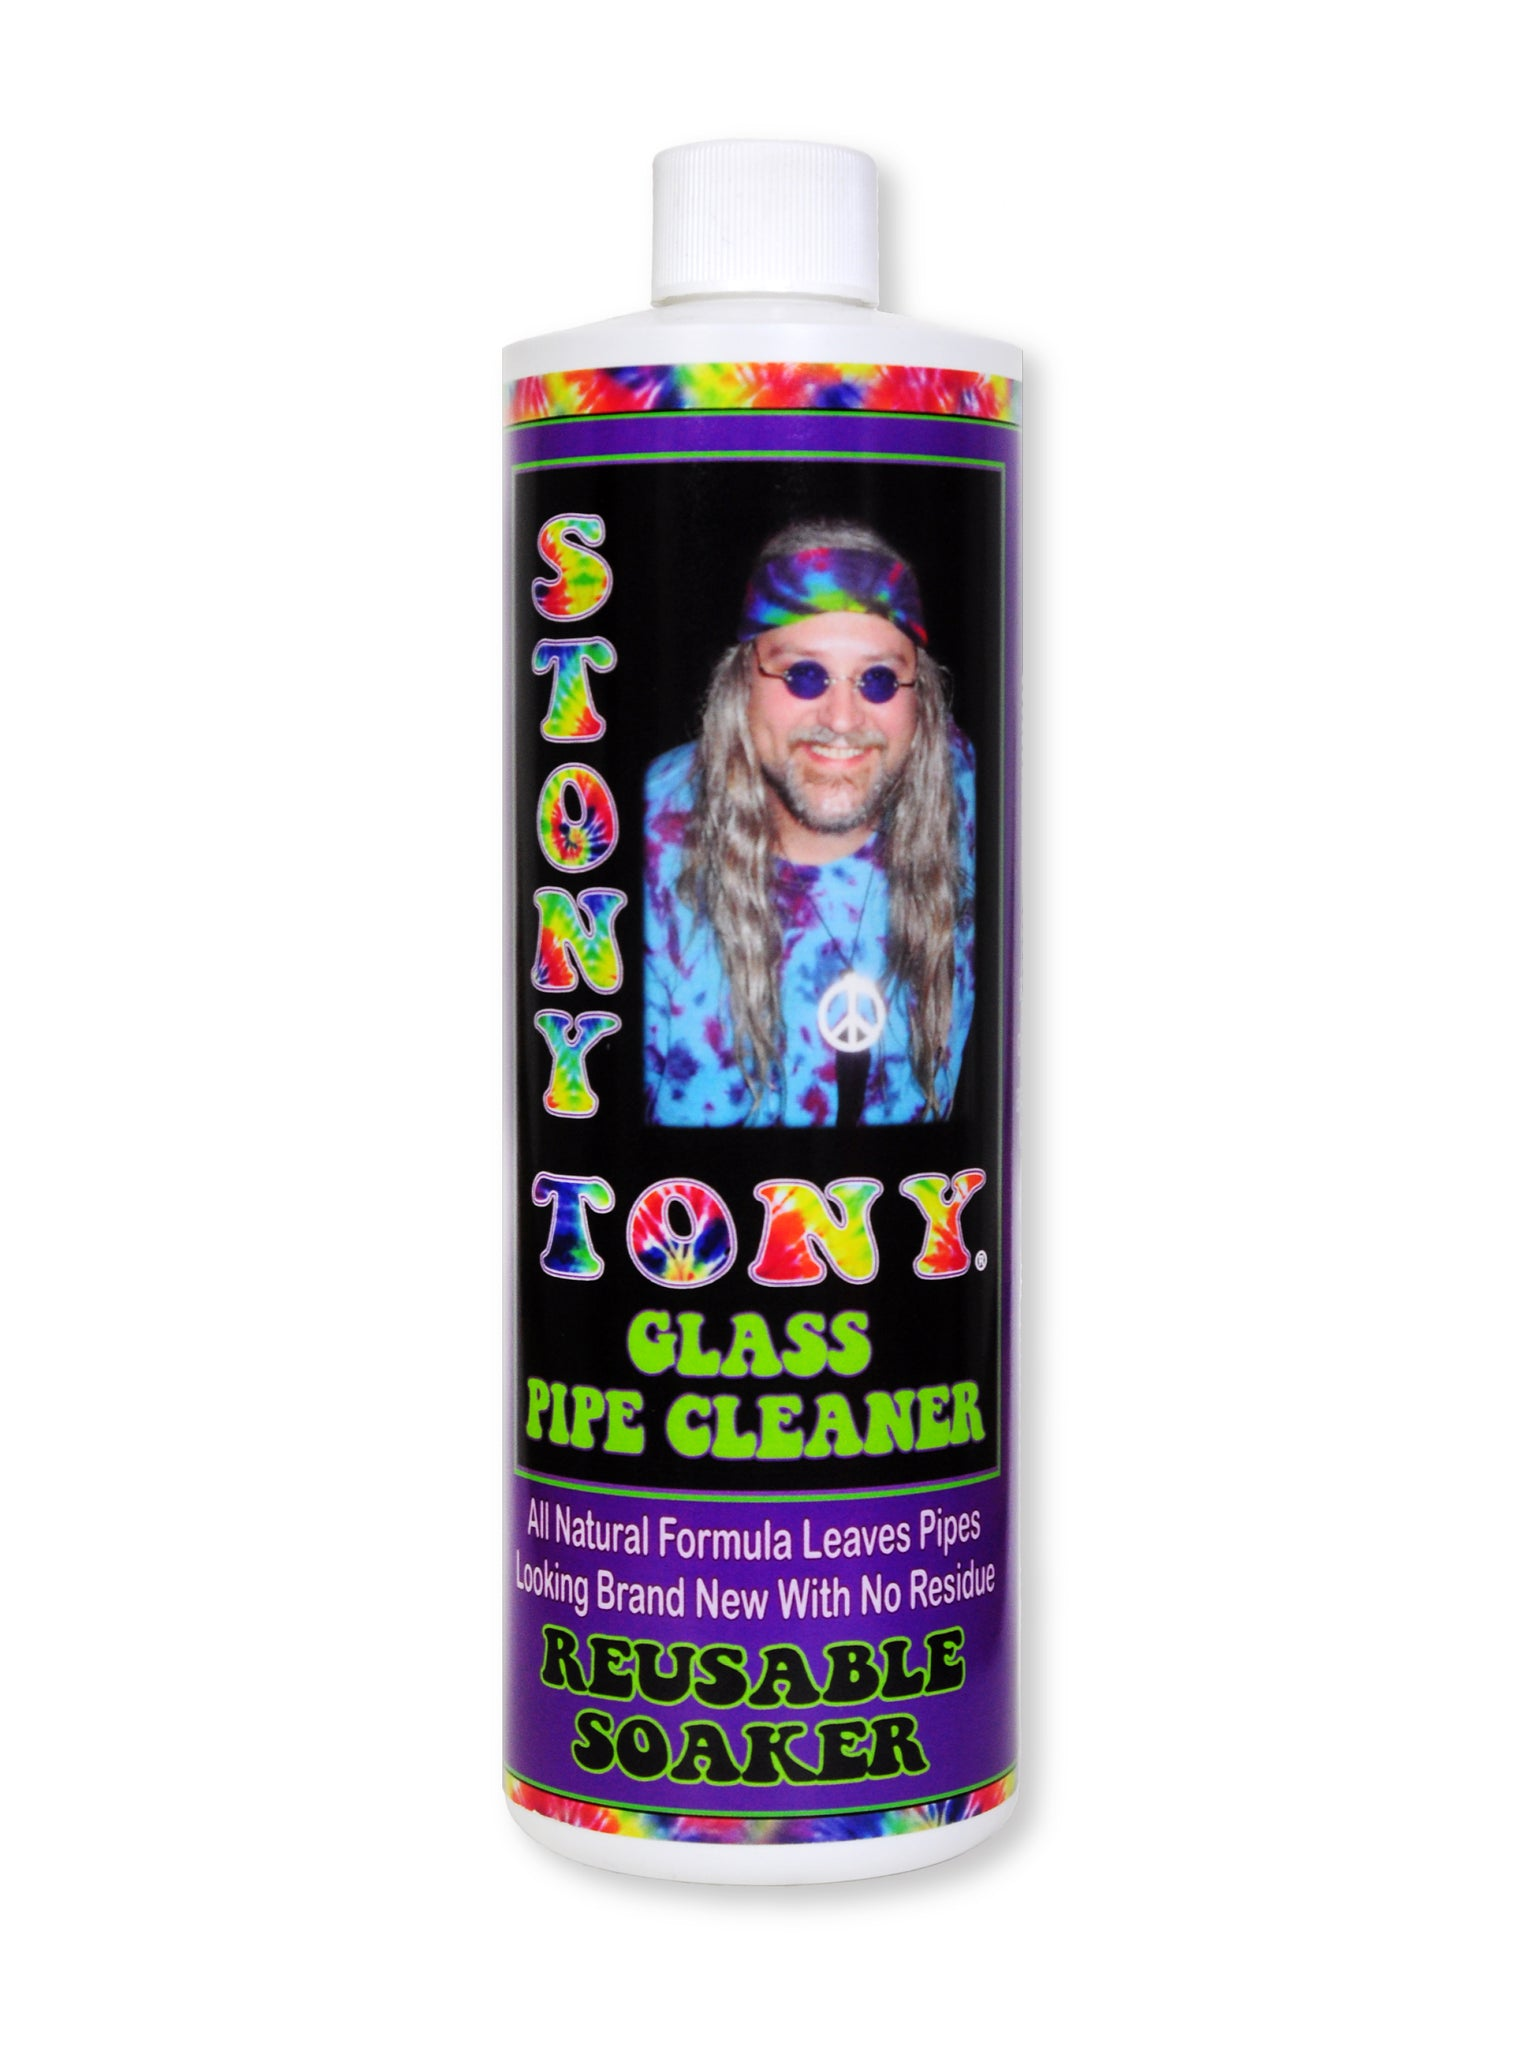 Stony Tony Glass Pipe Cleaner 16oz